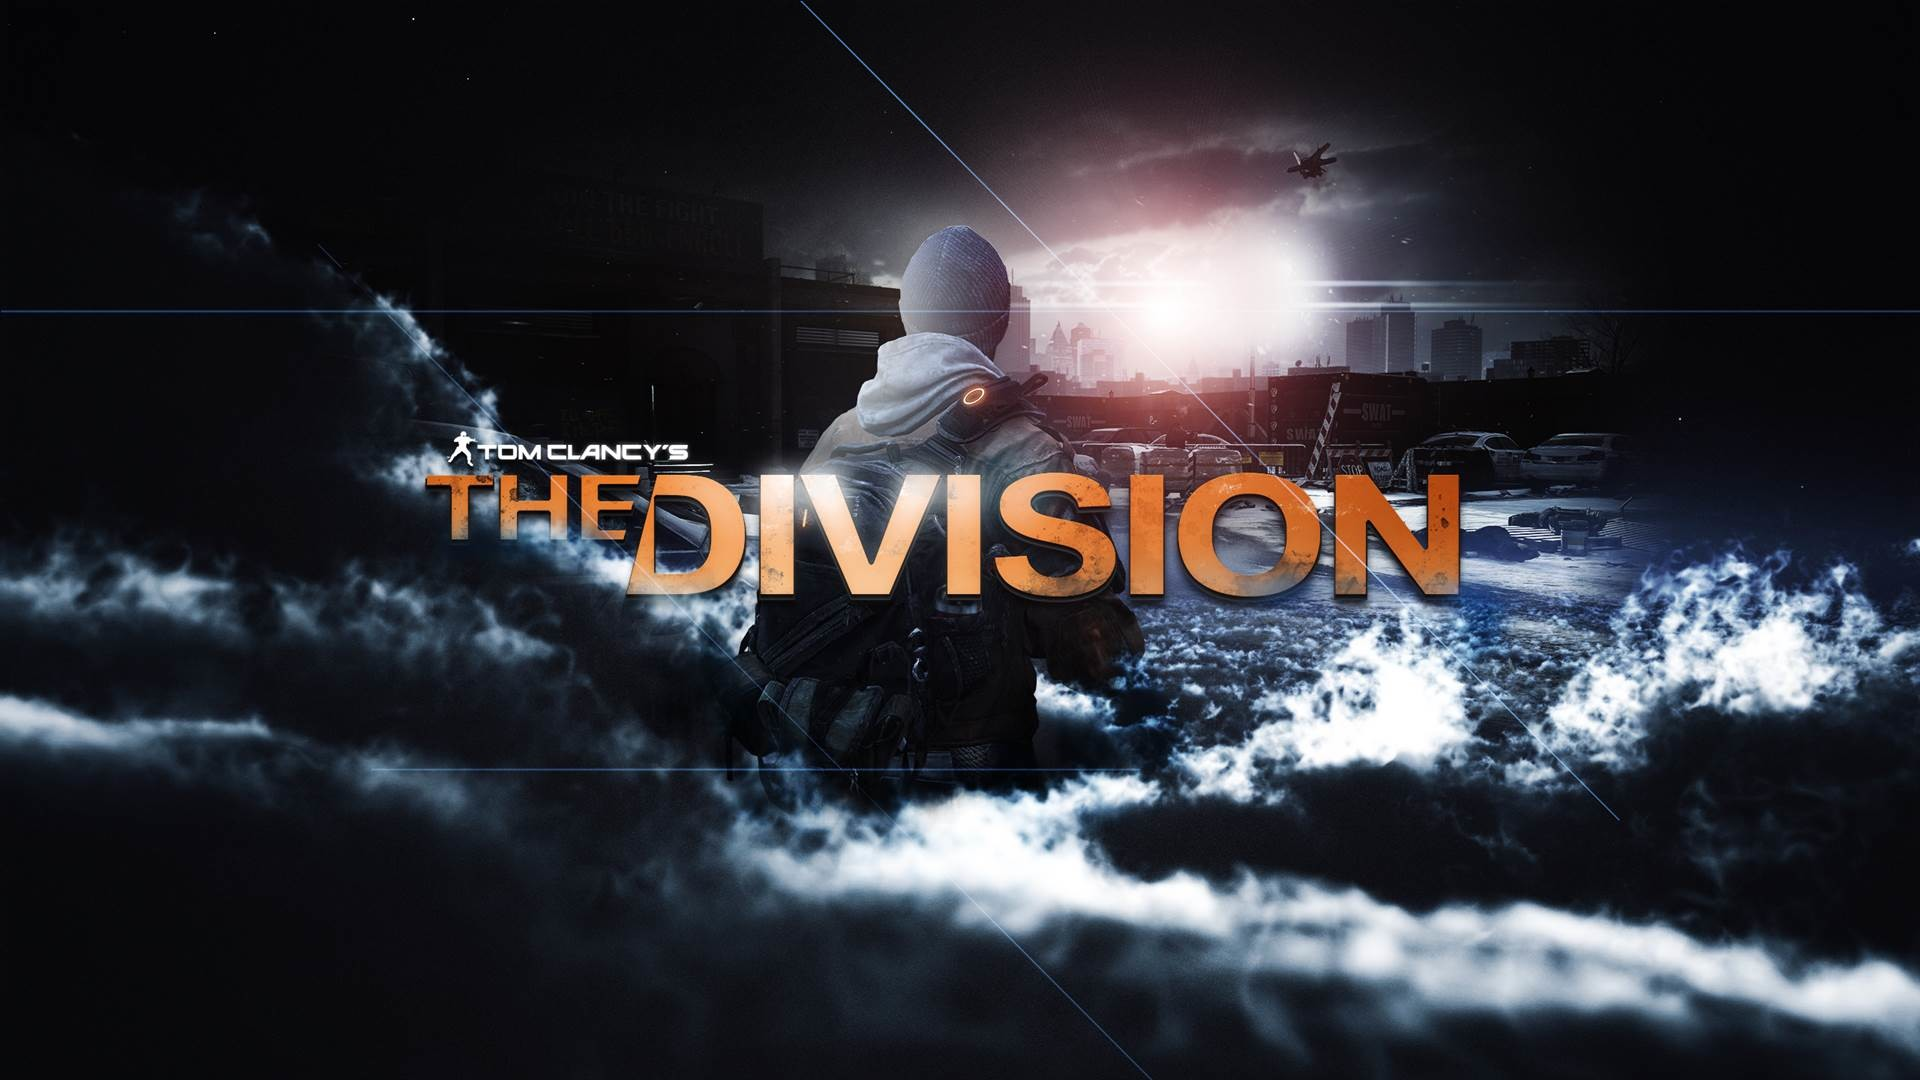 Tom Clancy's The Division Wallpapers in 1080P HD Â« GamingBolt.com .